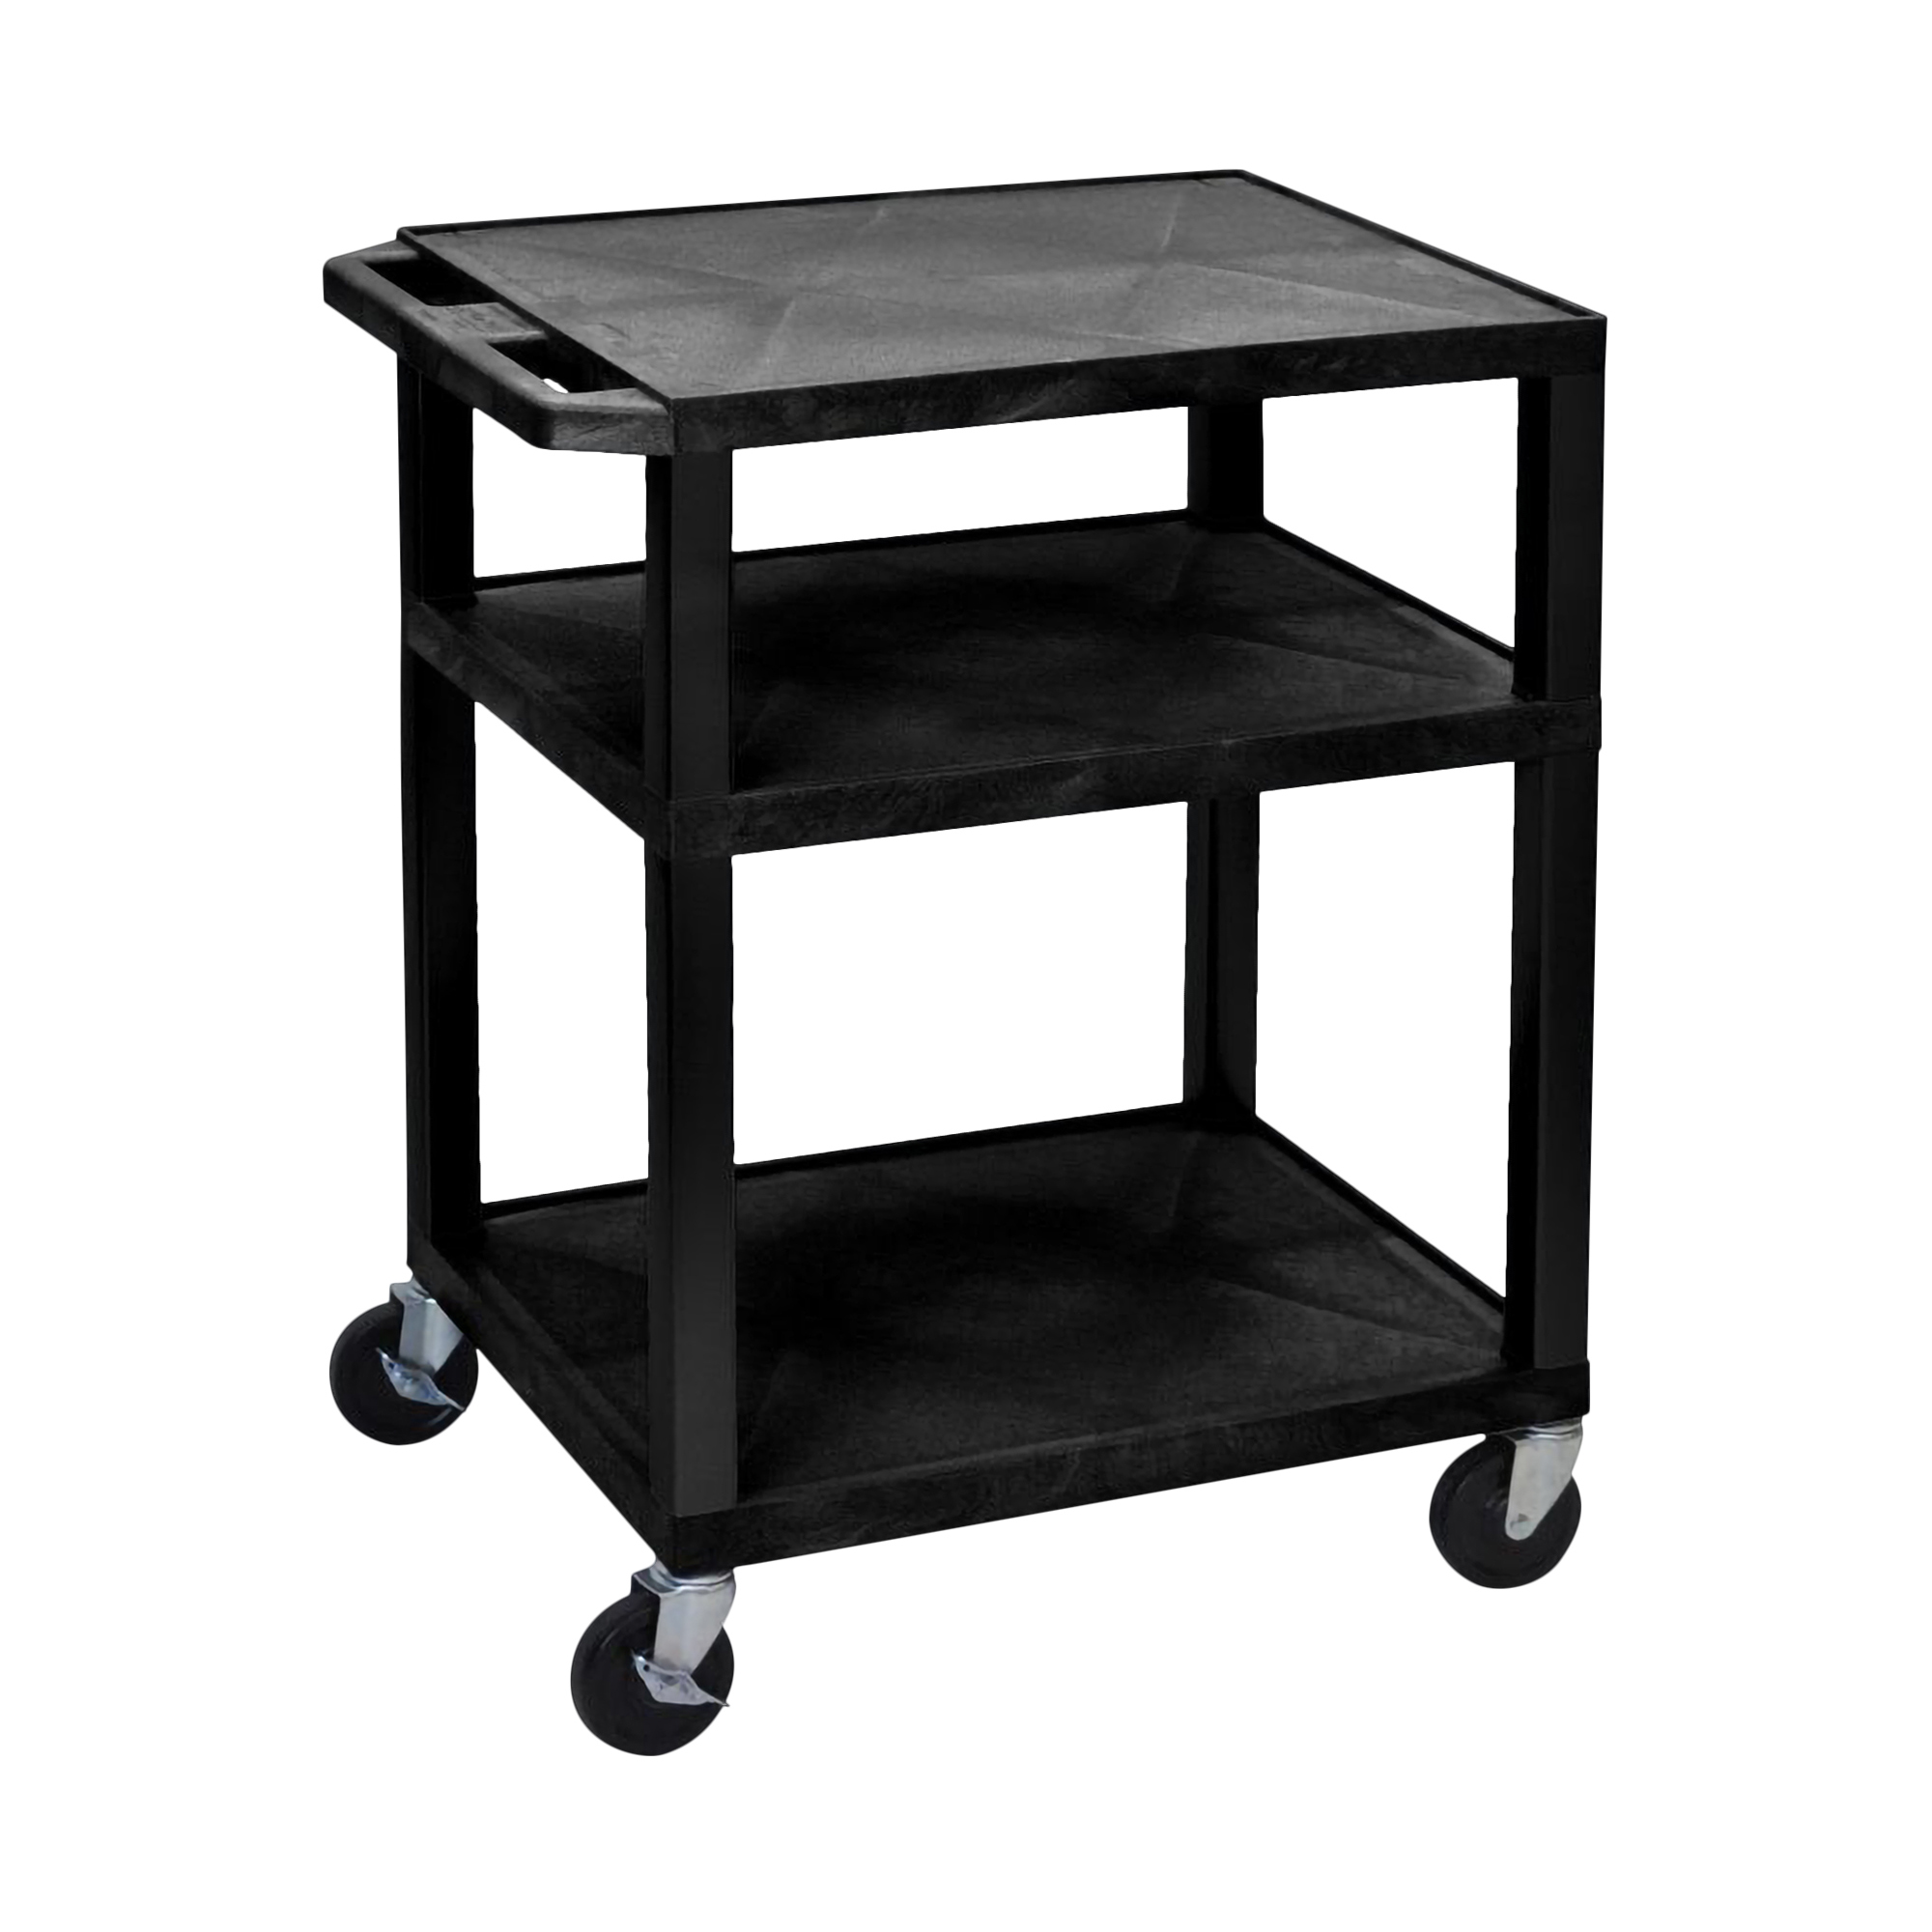 Luxor Mobile Black Multi-Purpose 3 Shelf Tuffy AV Cart With Putty Legs, Electric And Heavy Duty Casters at Sears.com